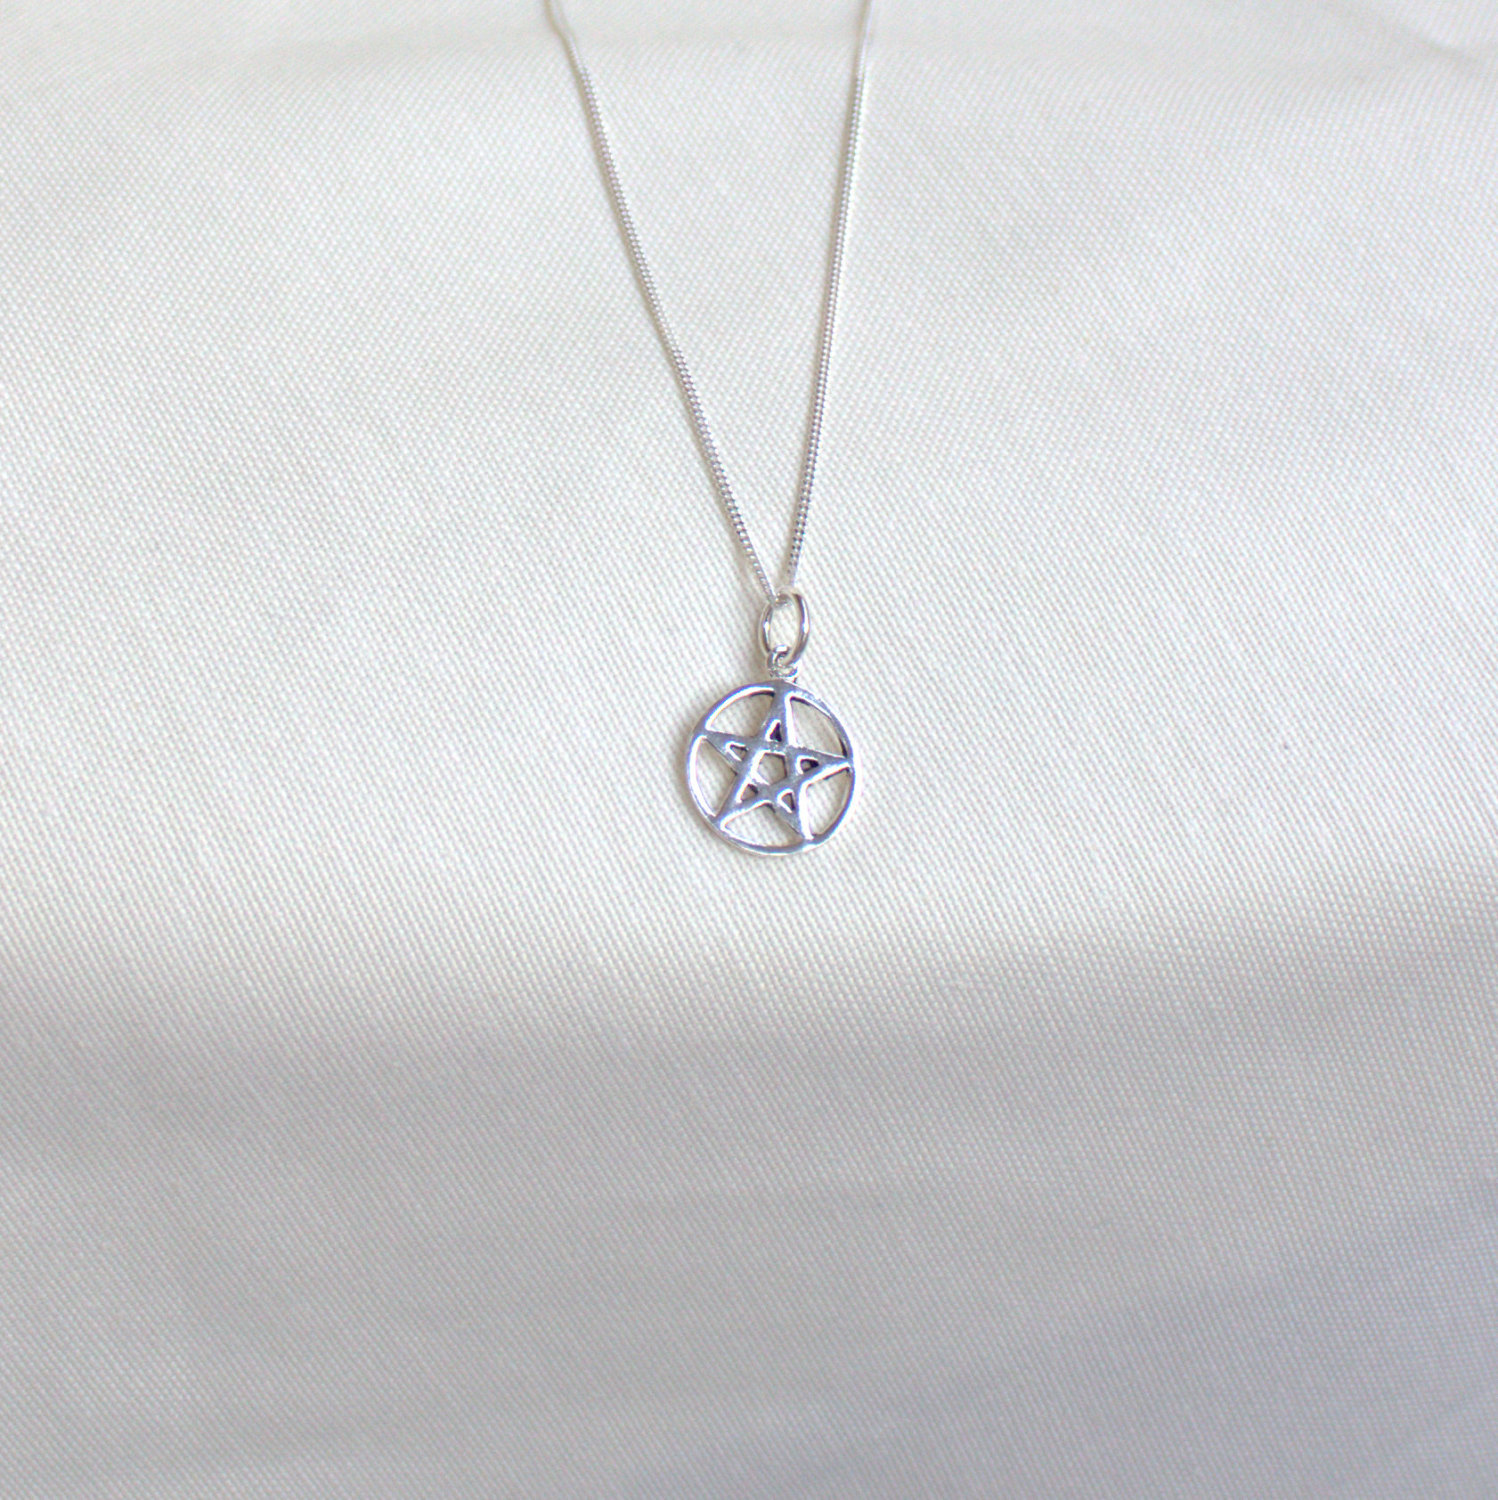 Silver pentagram necklace sterling silver pendant and chain pendacle il fullxfull528712606 d2pj small aloadofball Choice Image